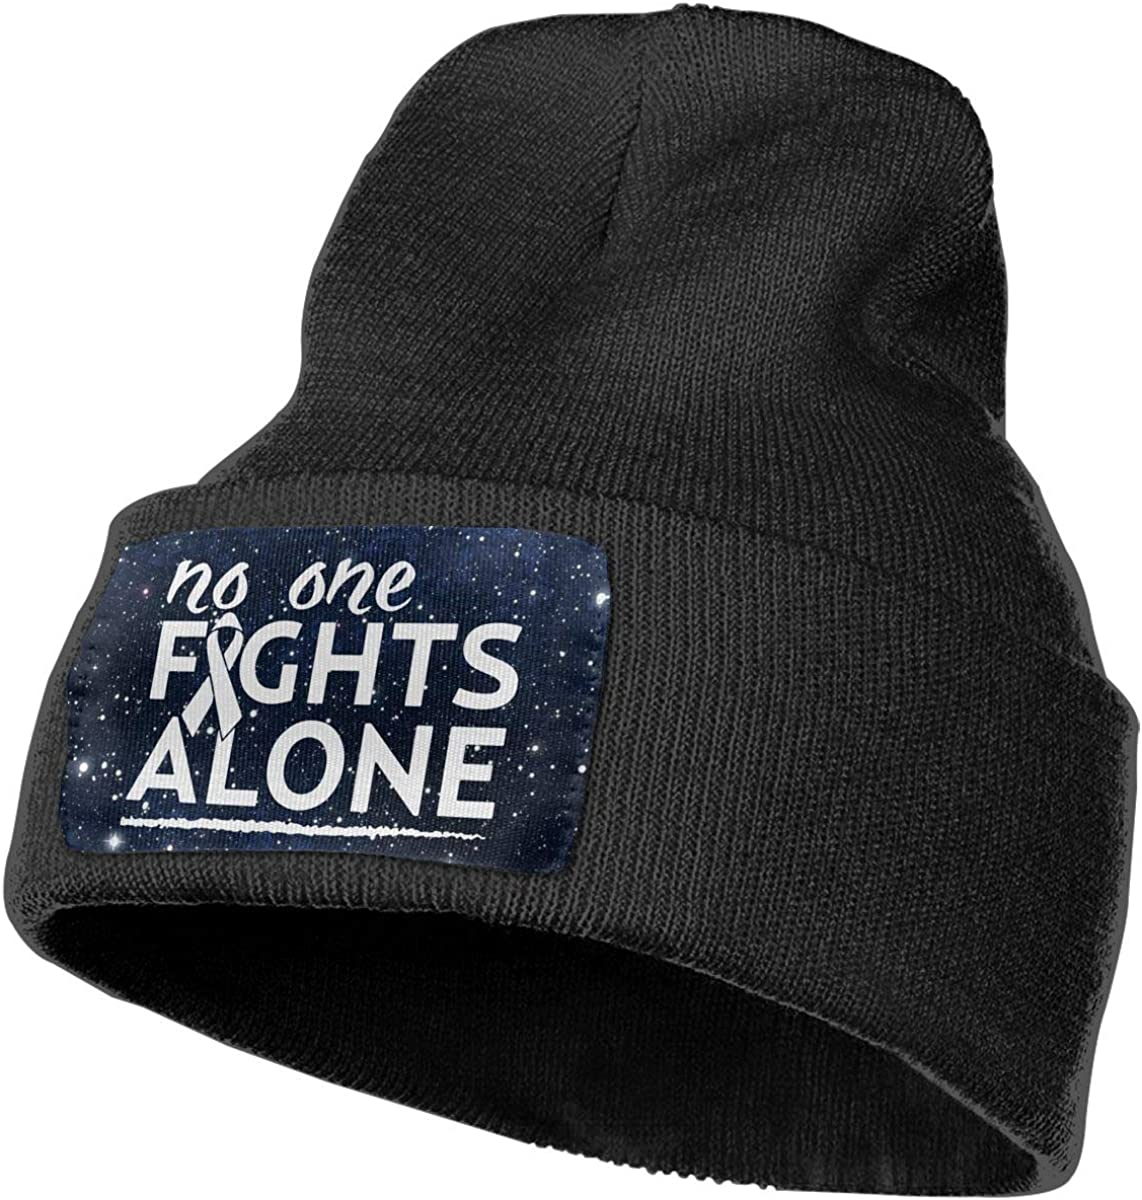 Unisex No One Fights Alone Breast Cancer Awareness Outdoor Fashion Knit Beanies Hat Soft Winter Skull Caps